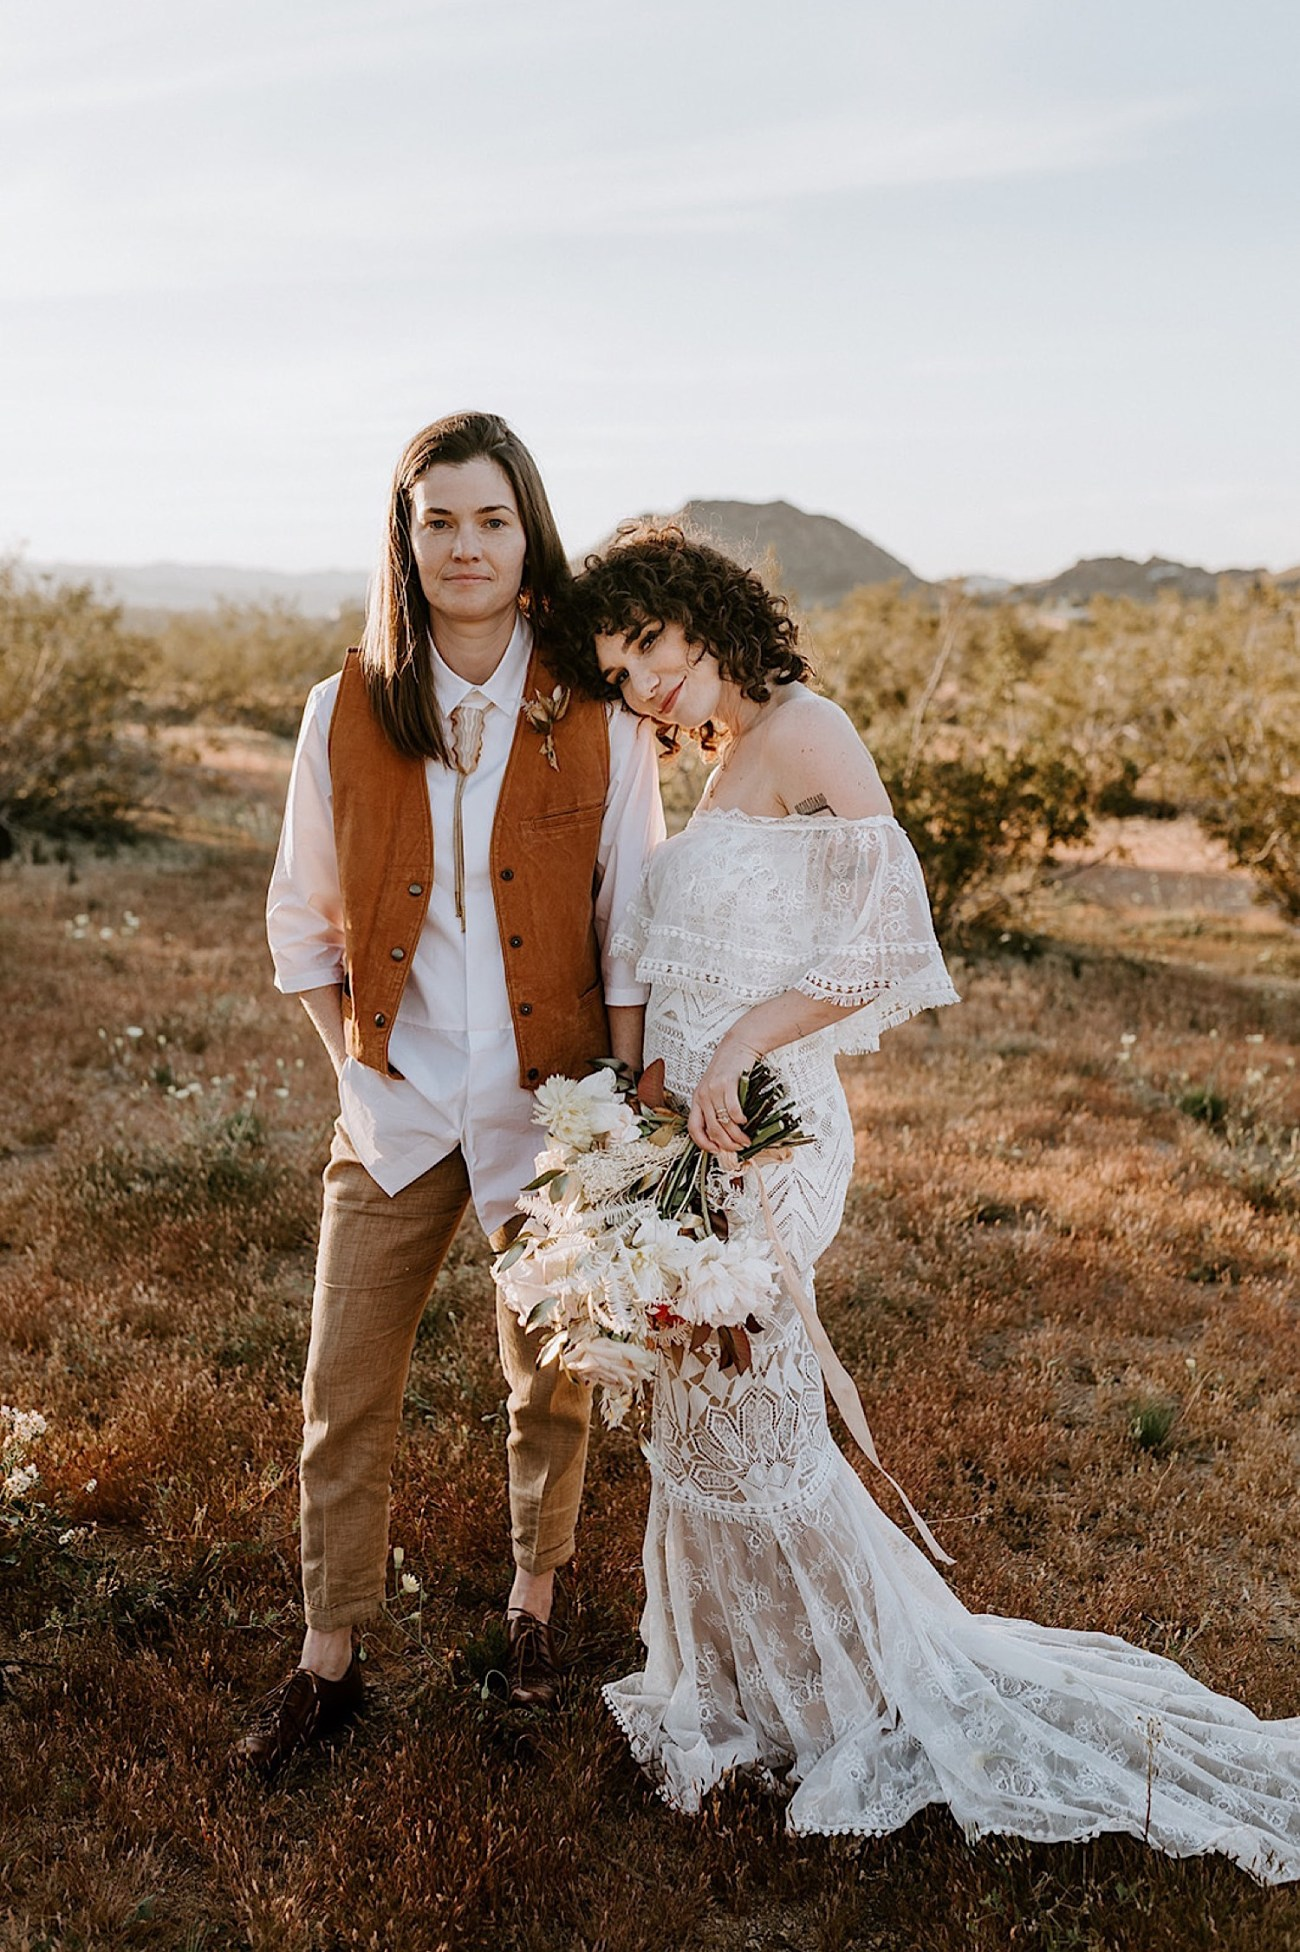 017 Joshua Tree Elopement Palm Springs Wedding California Wedding Photographer